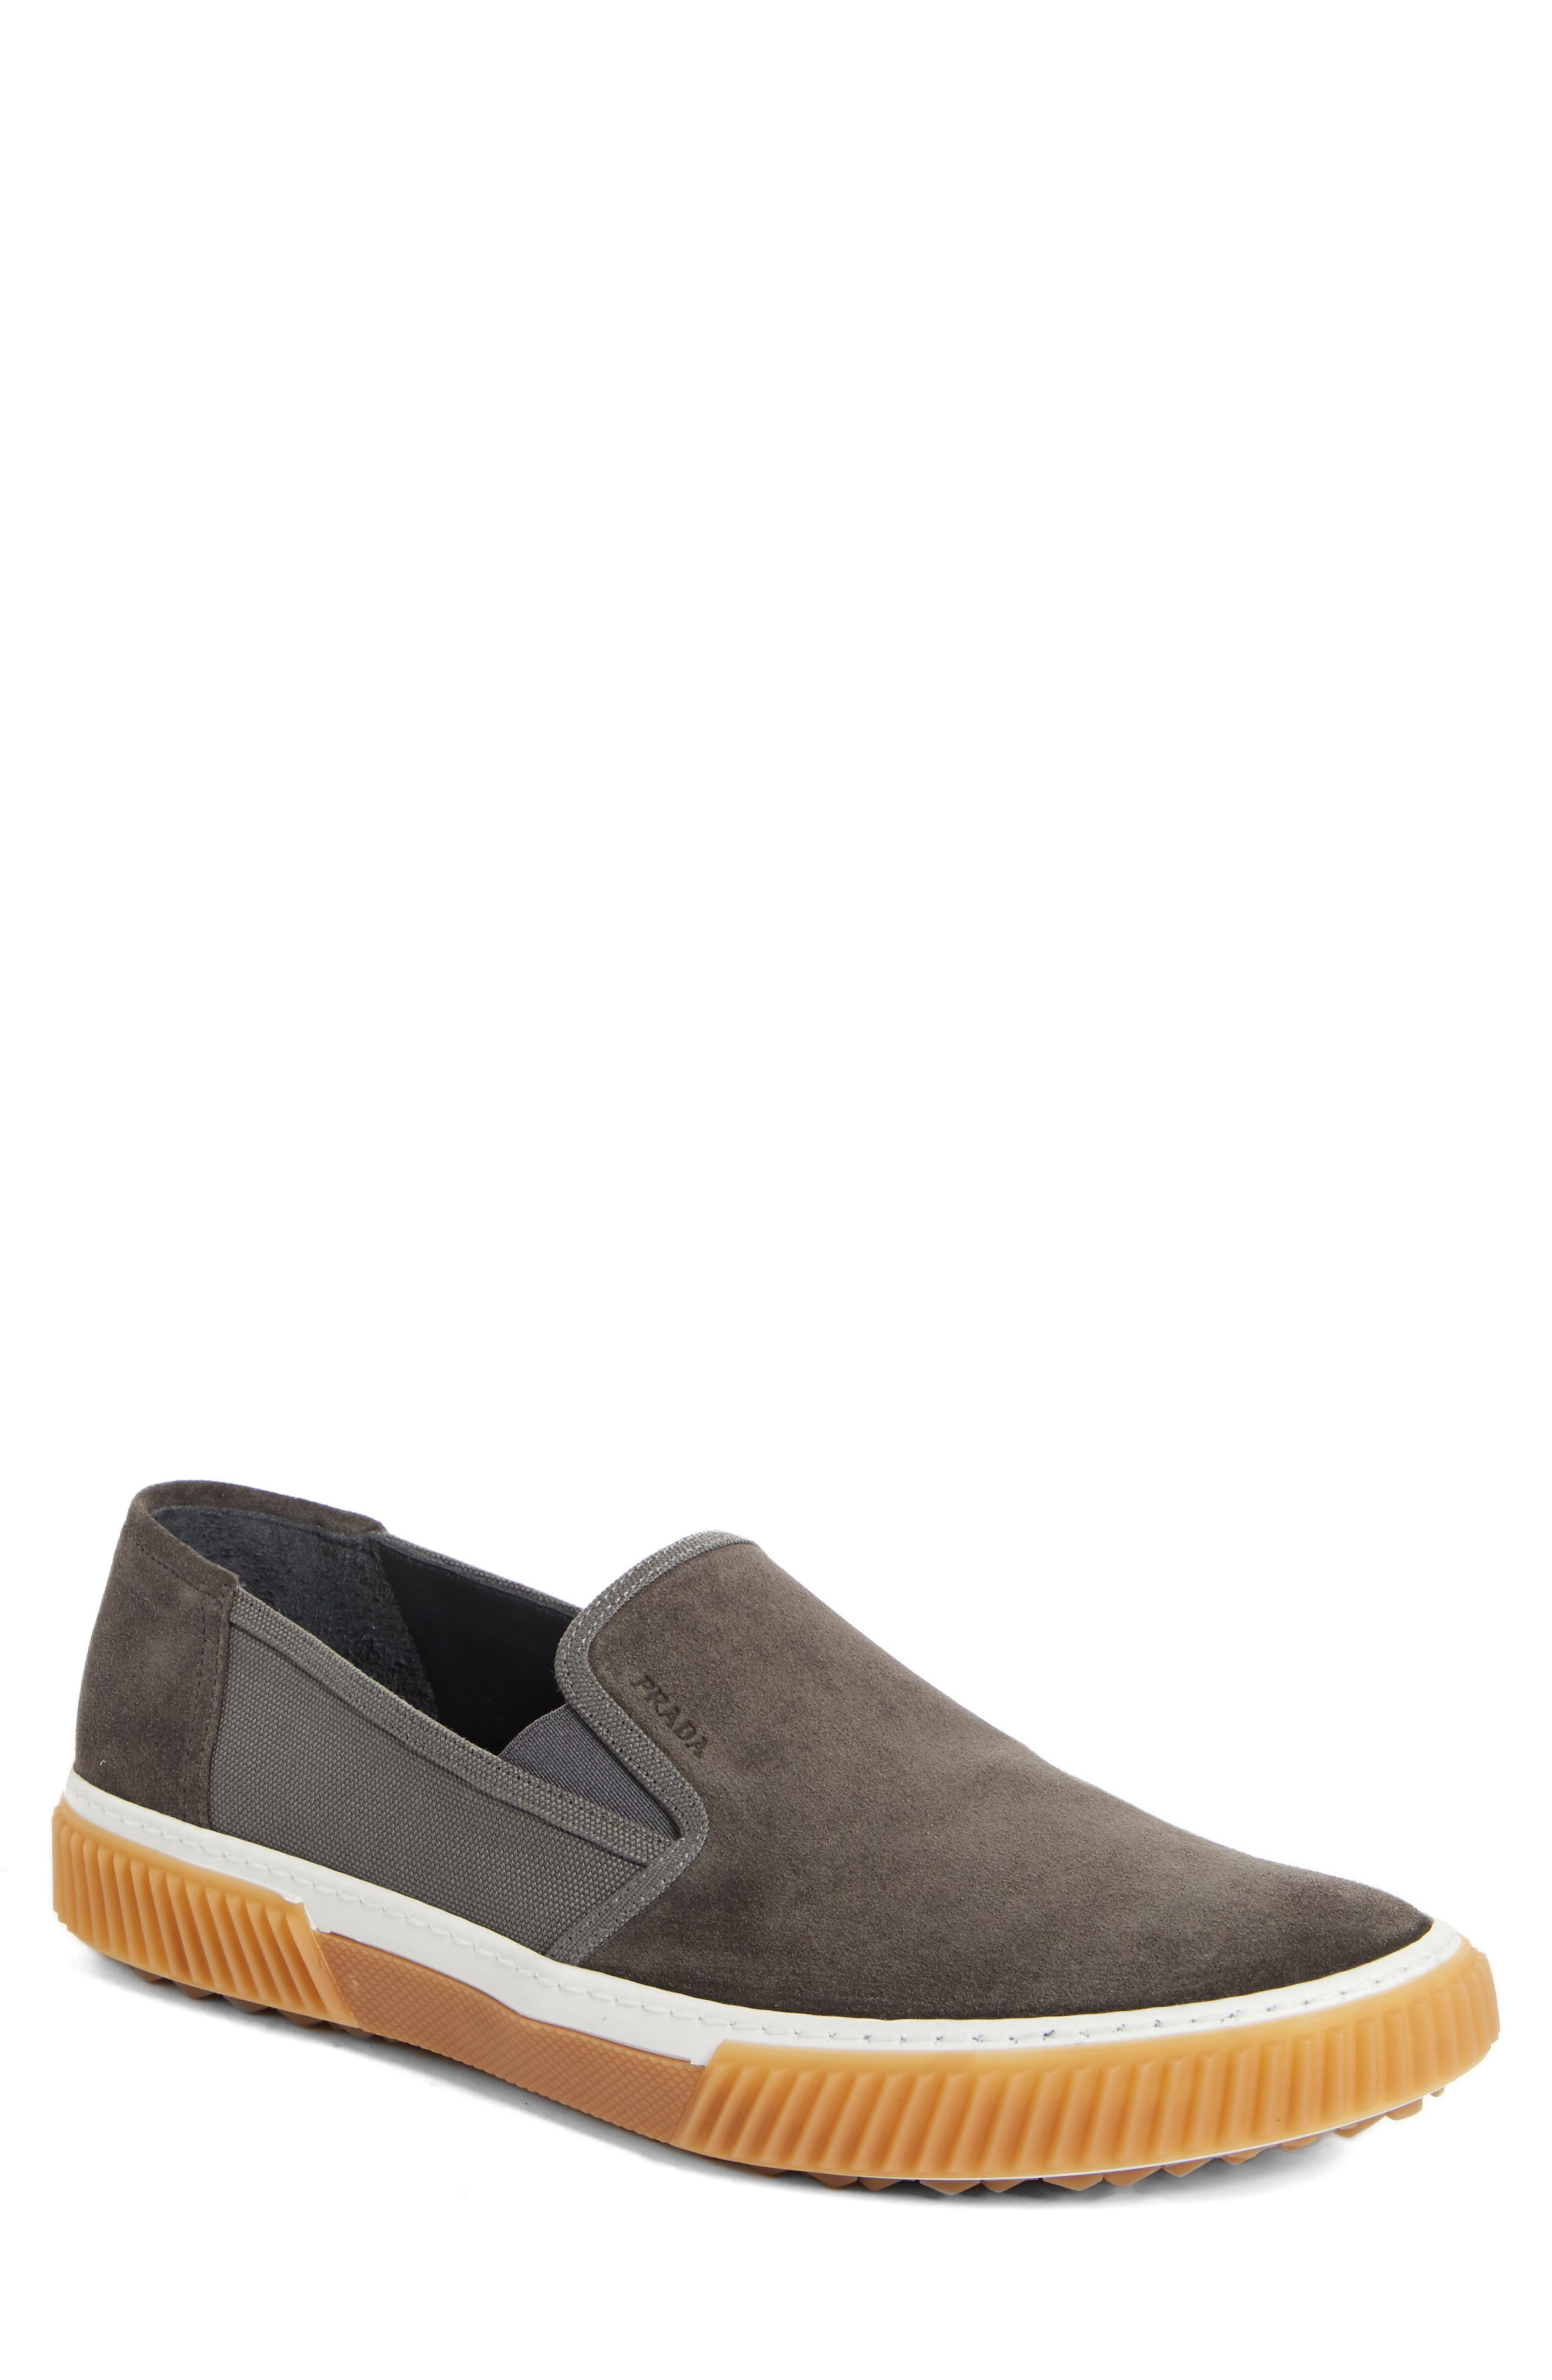 Linea Rossa Slip-On, Main, color, GREY